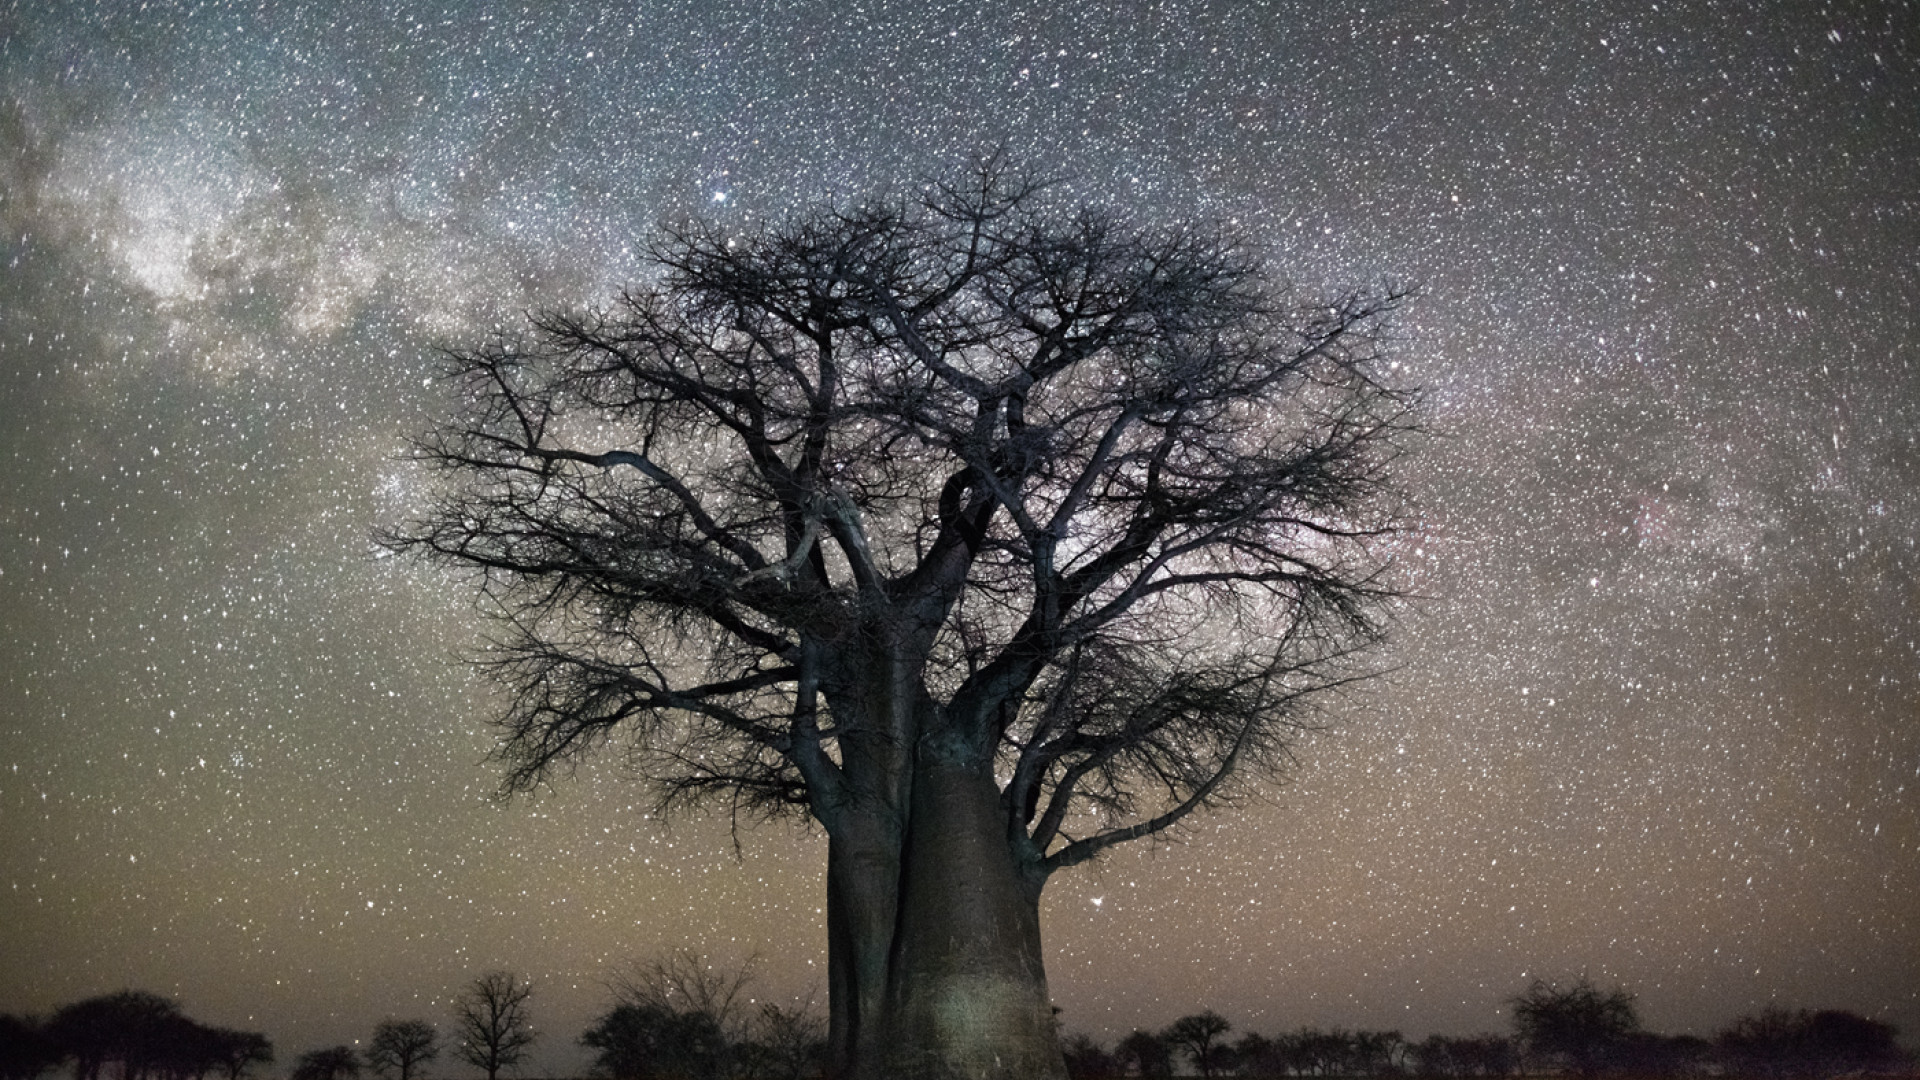 Tree against starry night sky